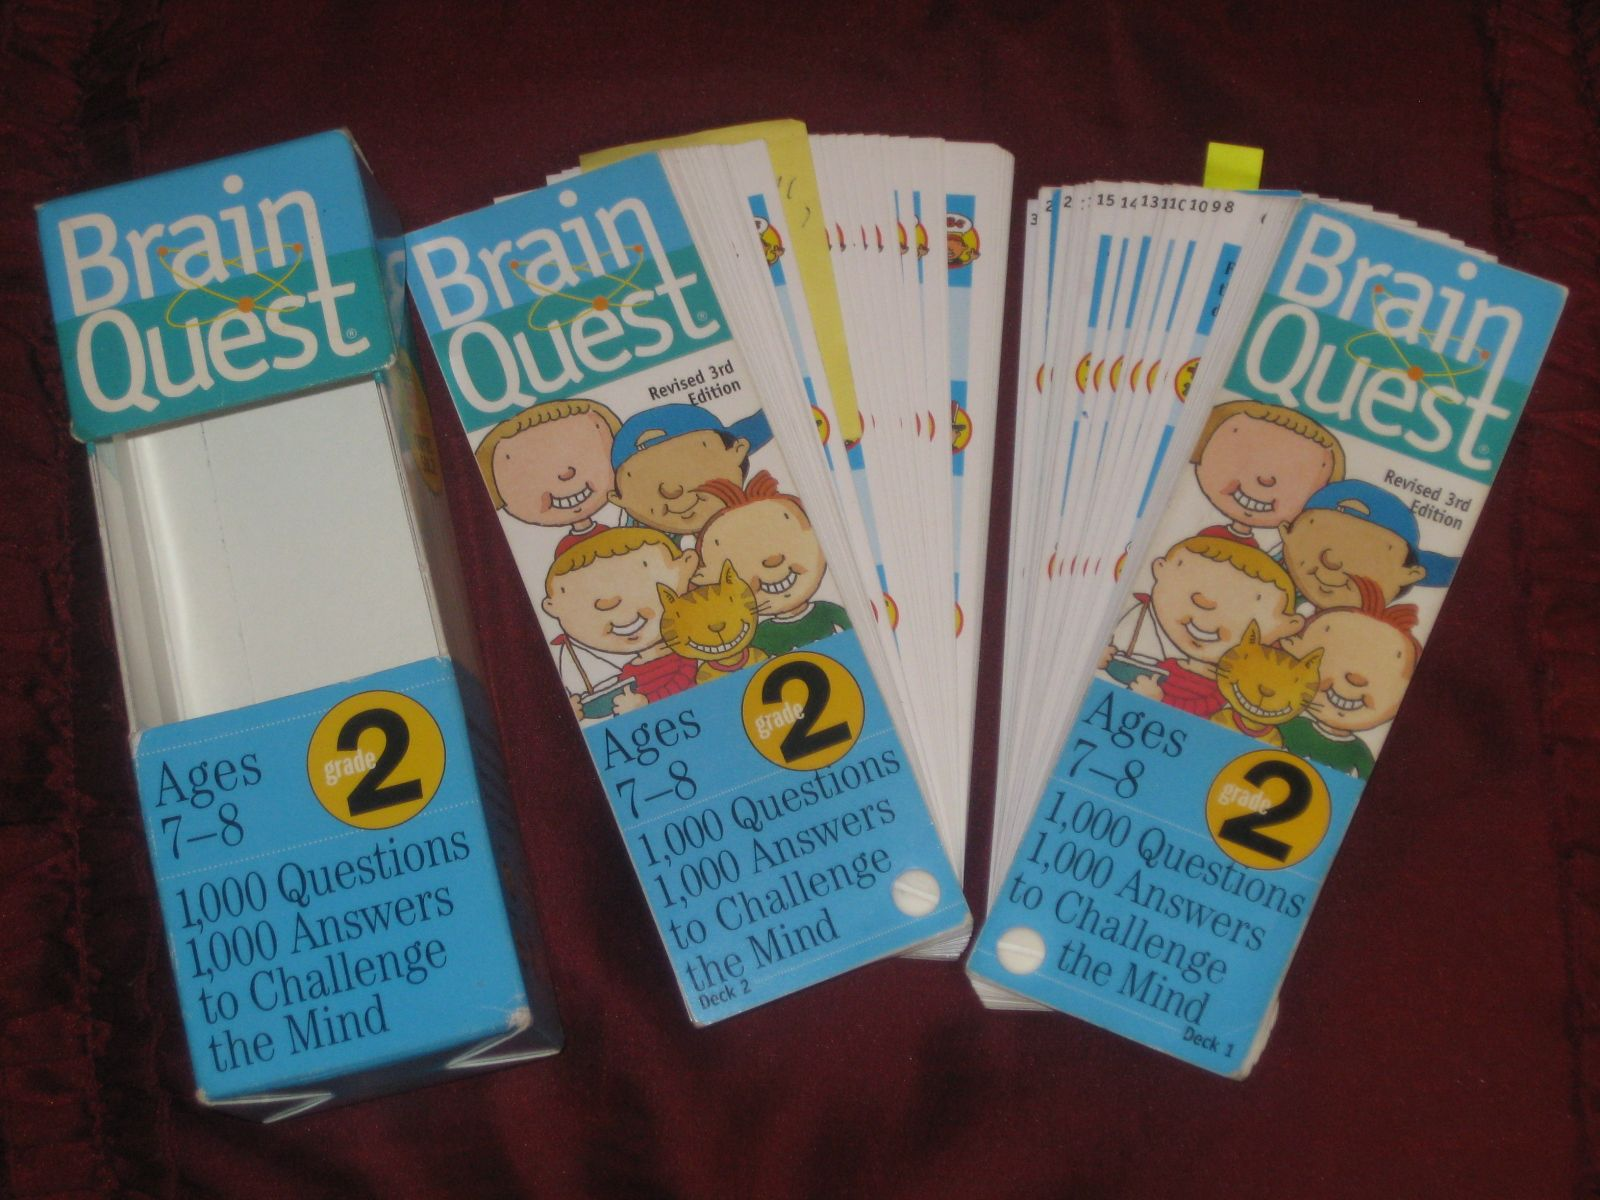 Brain Quest Ages 7 8 Learning Card Games 1000 Questions 1000